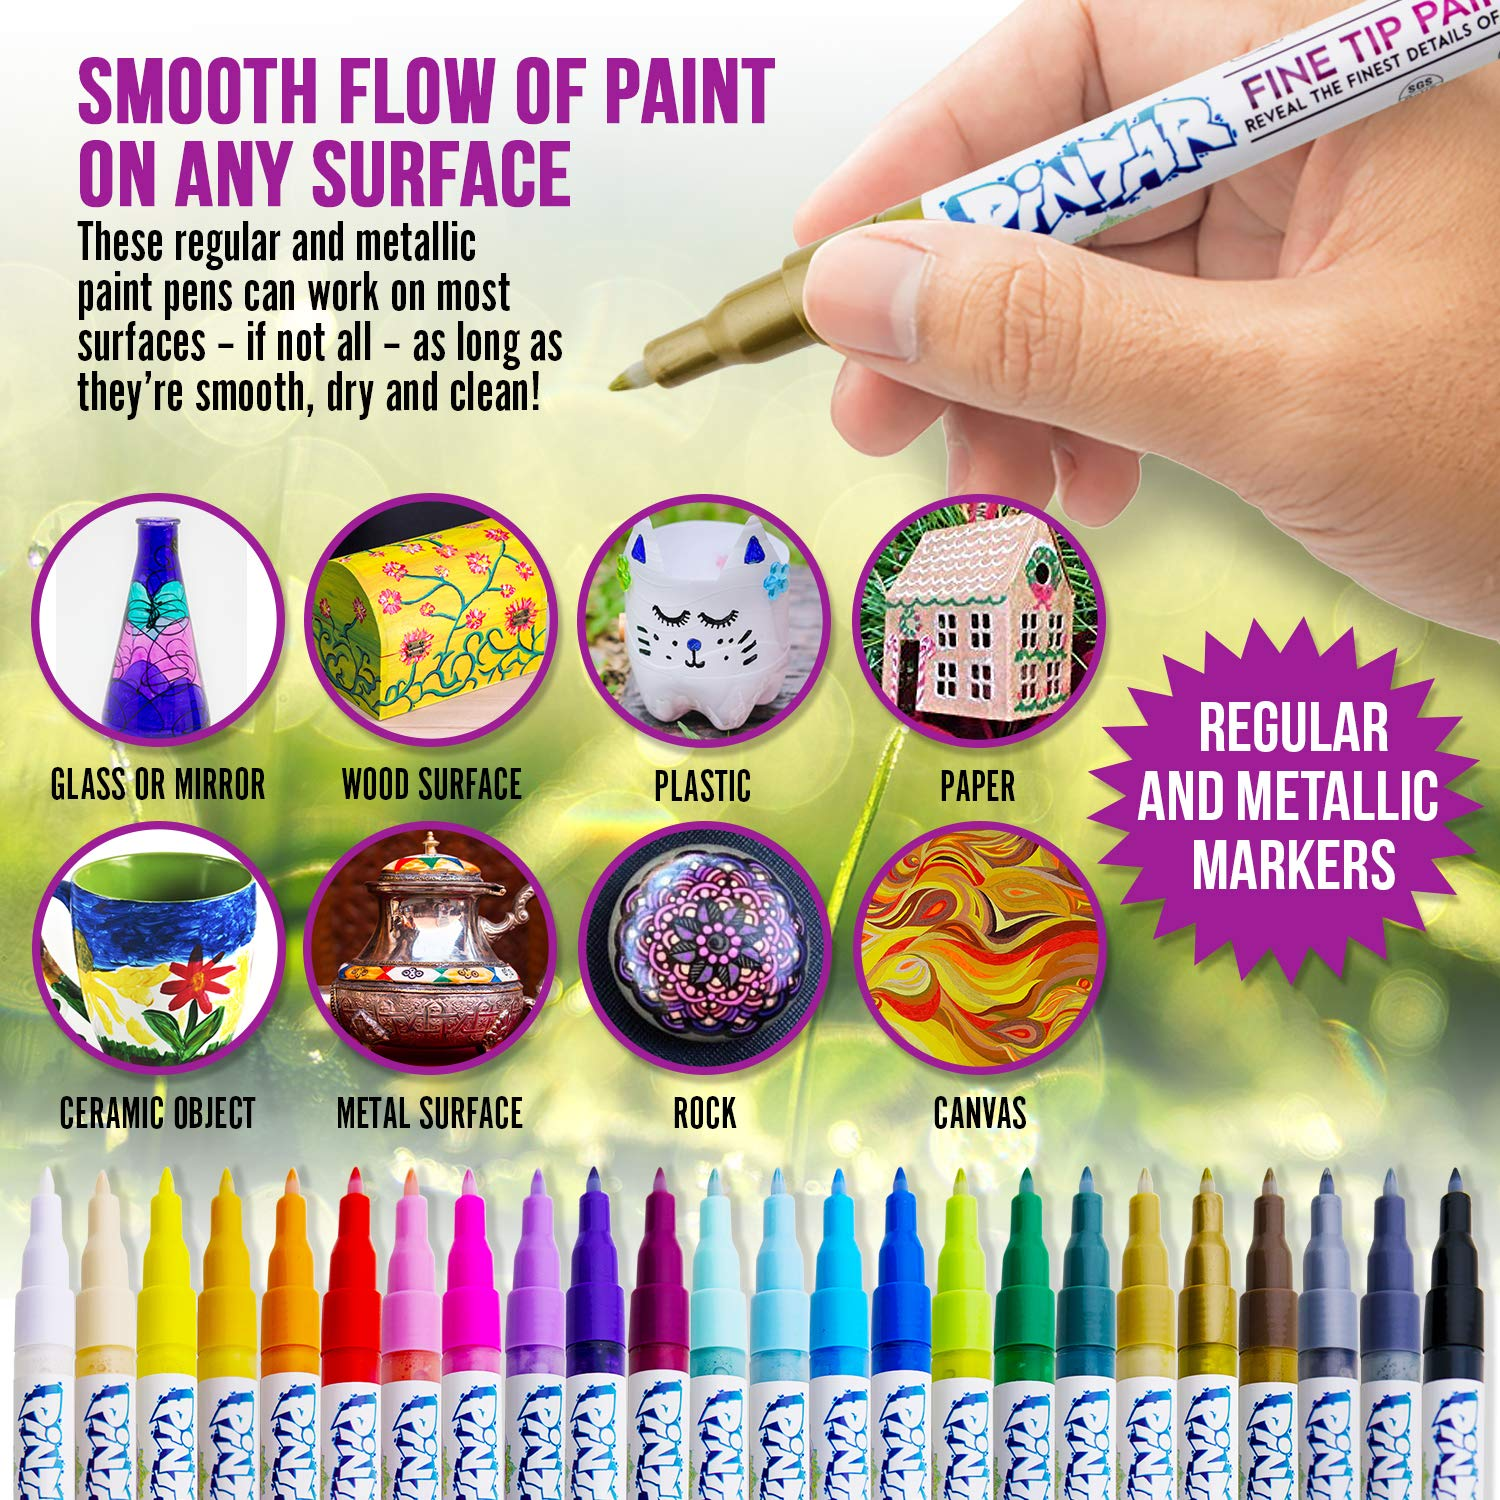 PINTAR - Acrylic Fine Tip Paint Pens For Rock Painting Art - 24 Pack Vibrant Colors for Wood, Glass, Metal and Ceramic - Water Resistant and Quick Drying Ink For Arts & Crafts by PINTAR (Image #2)